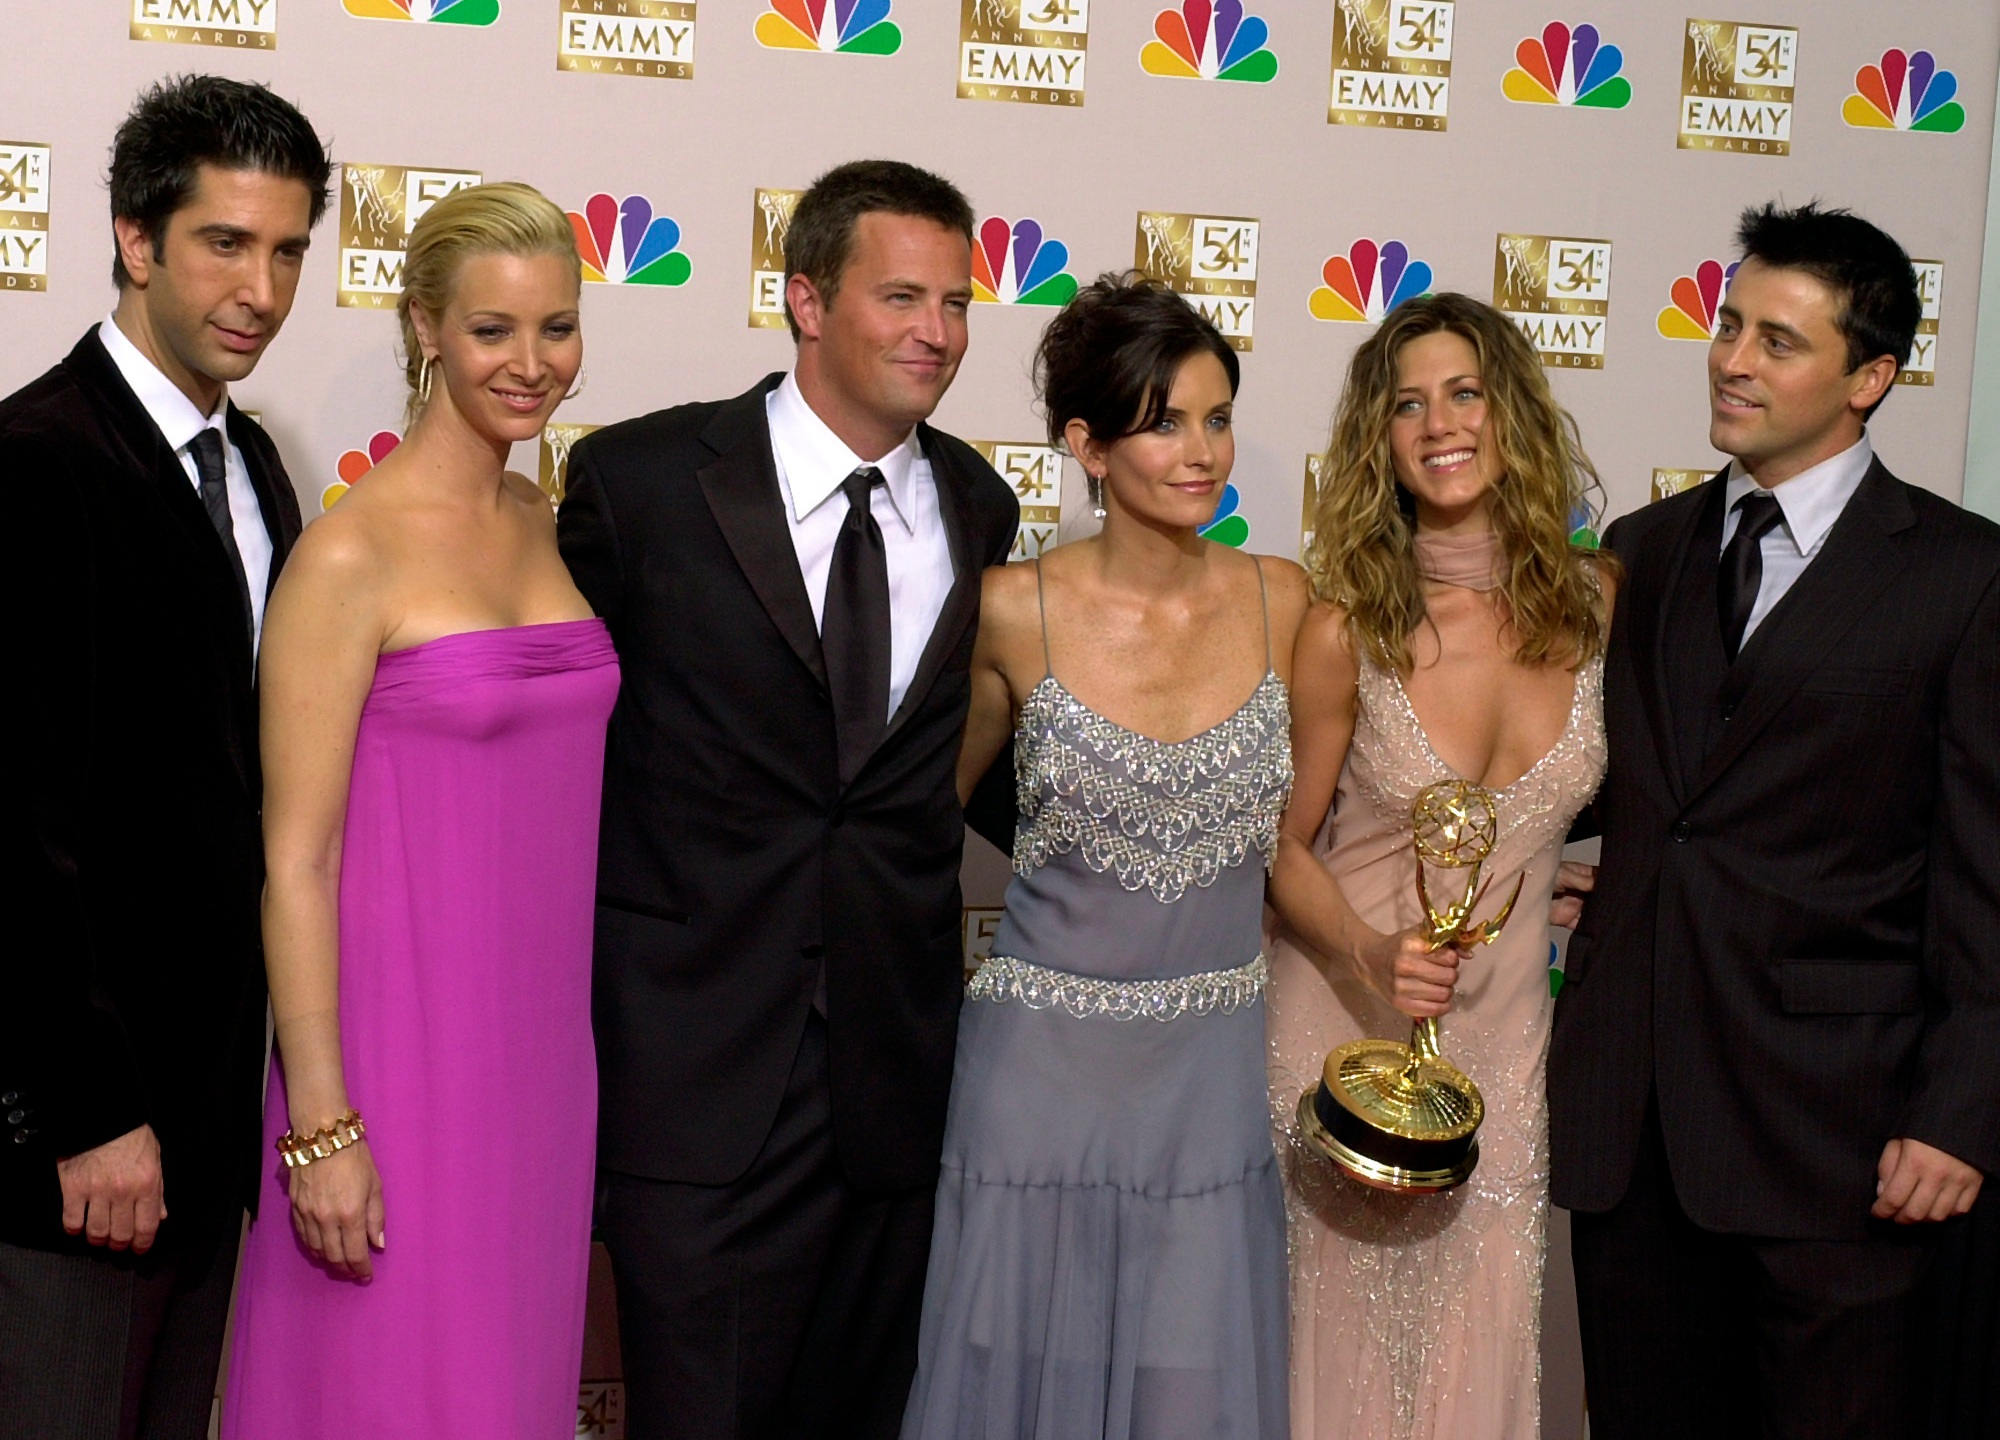 David Schwimmer, Lisa Kudrow, Matthew Perry, Courteney Cox, Jennifer Aniston, Matt LeBlanc